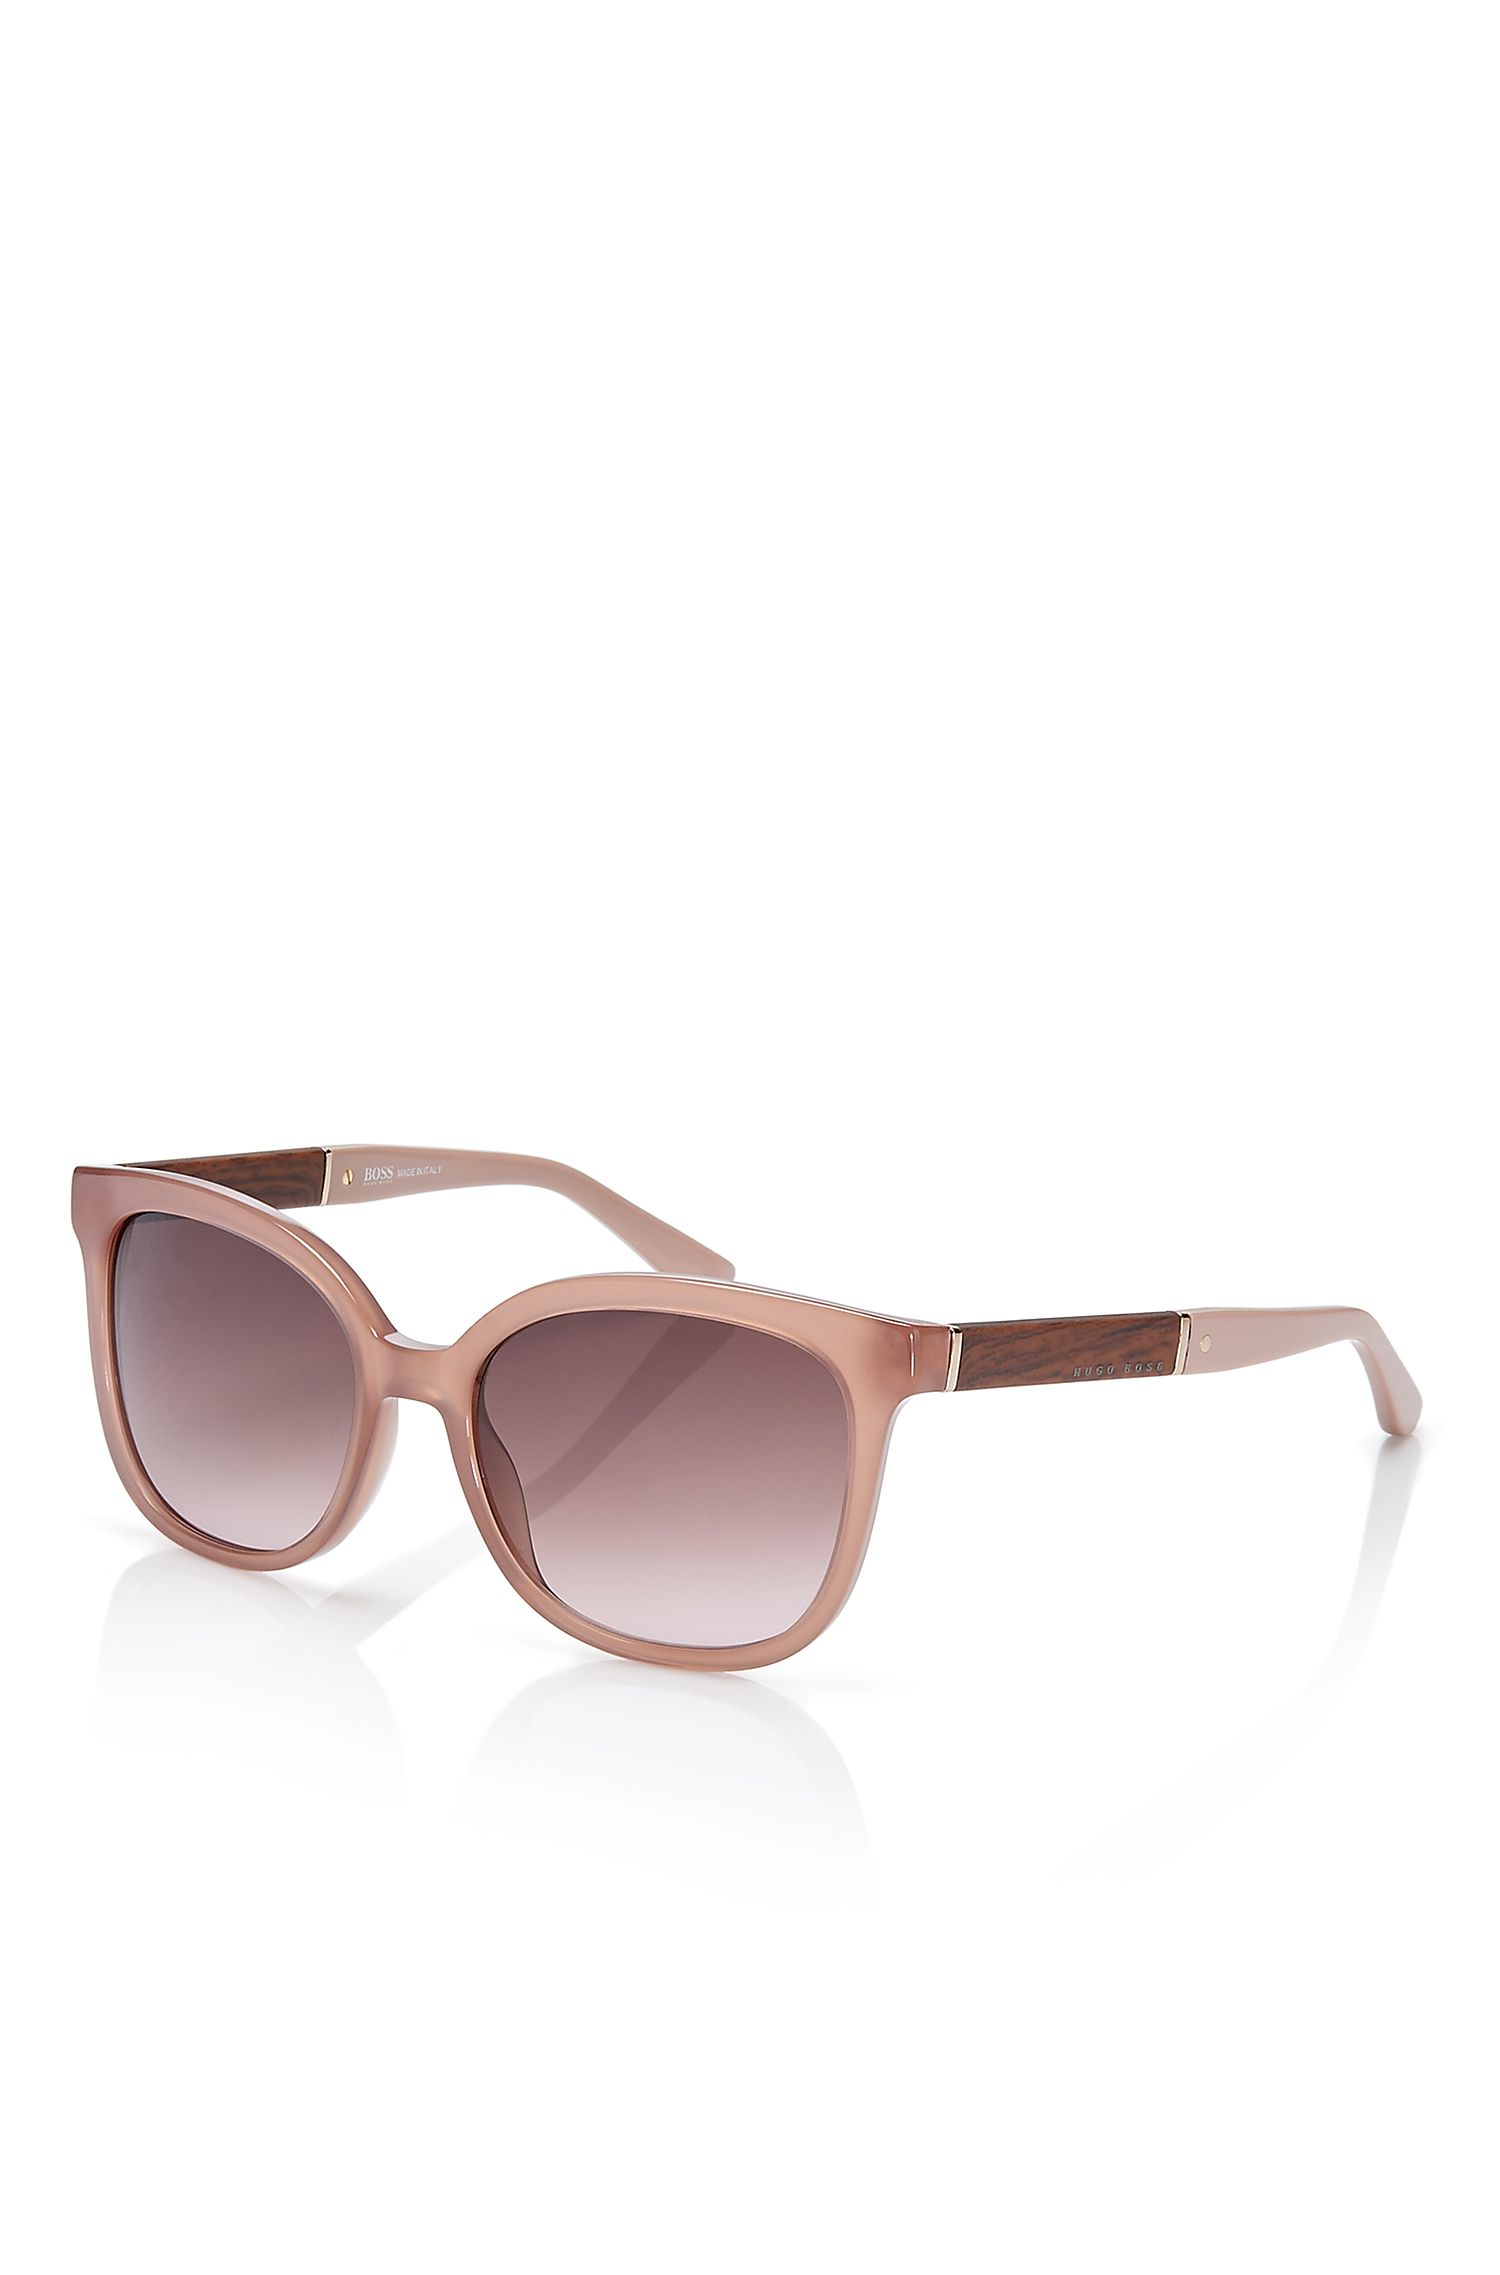 'BOSS 0663S' | Rectangular Wood Pattern Sunglasses